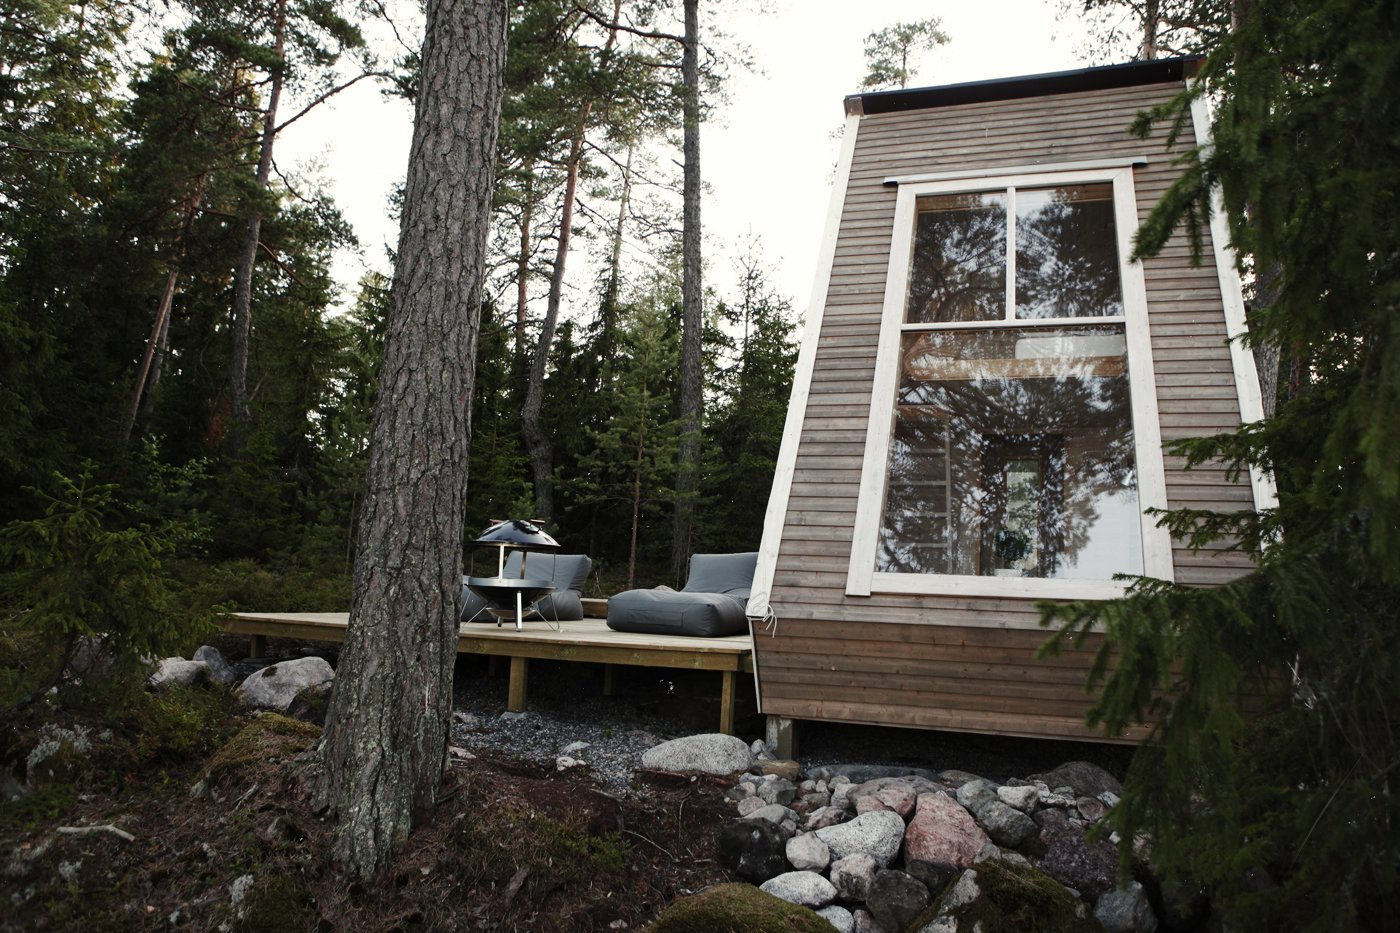 Nido Tiny Cabin by Robert Falck exterior with three panel window and recycled wood deck patio in Sipoo forest in Finland